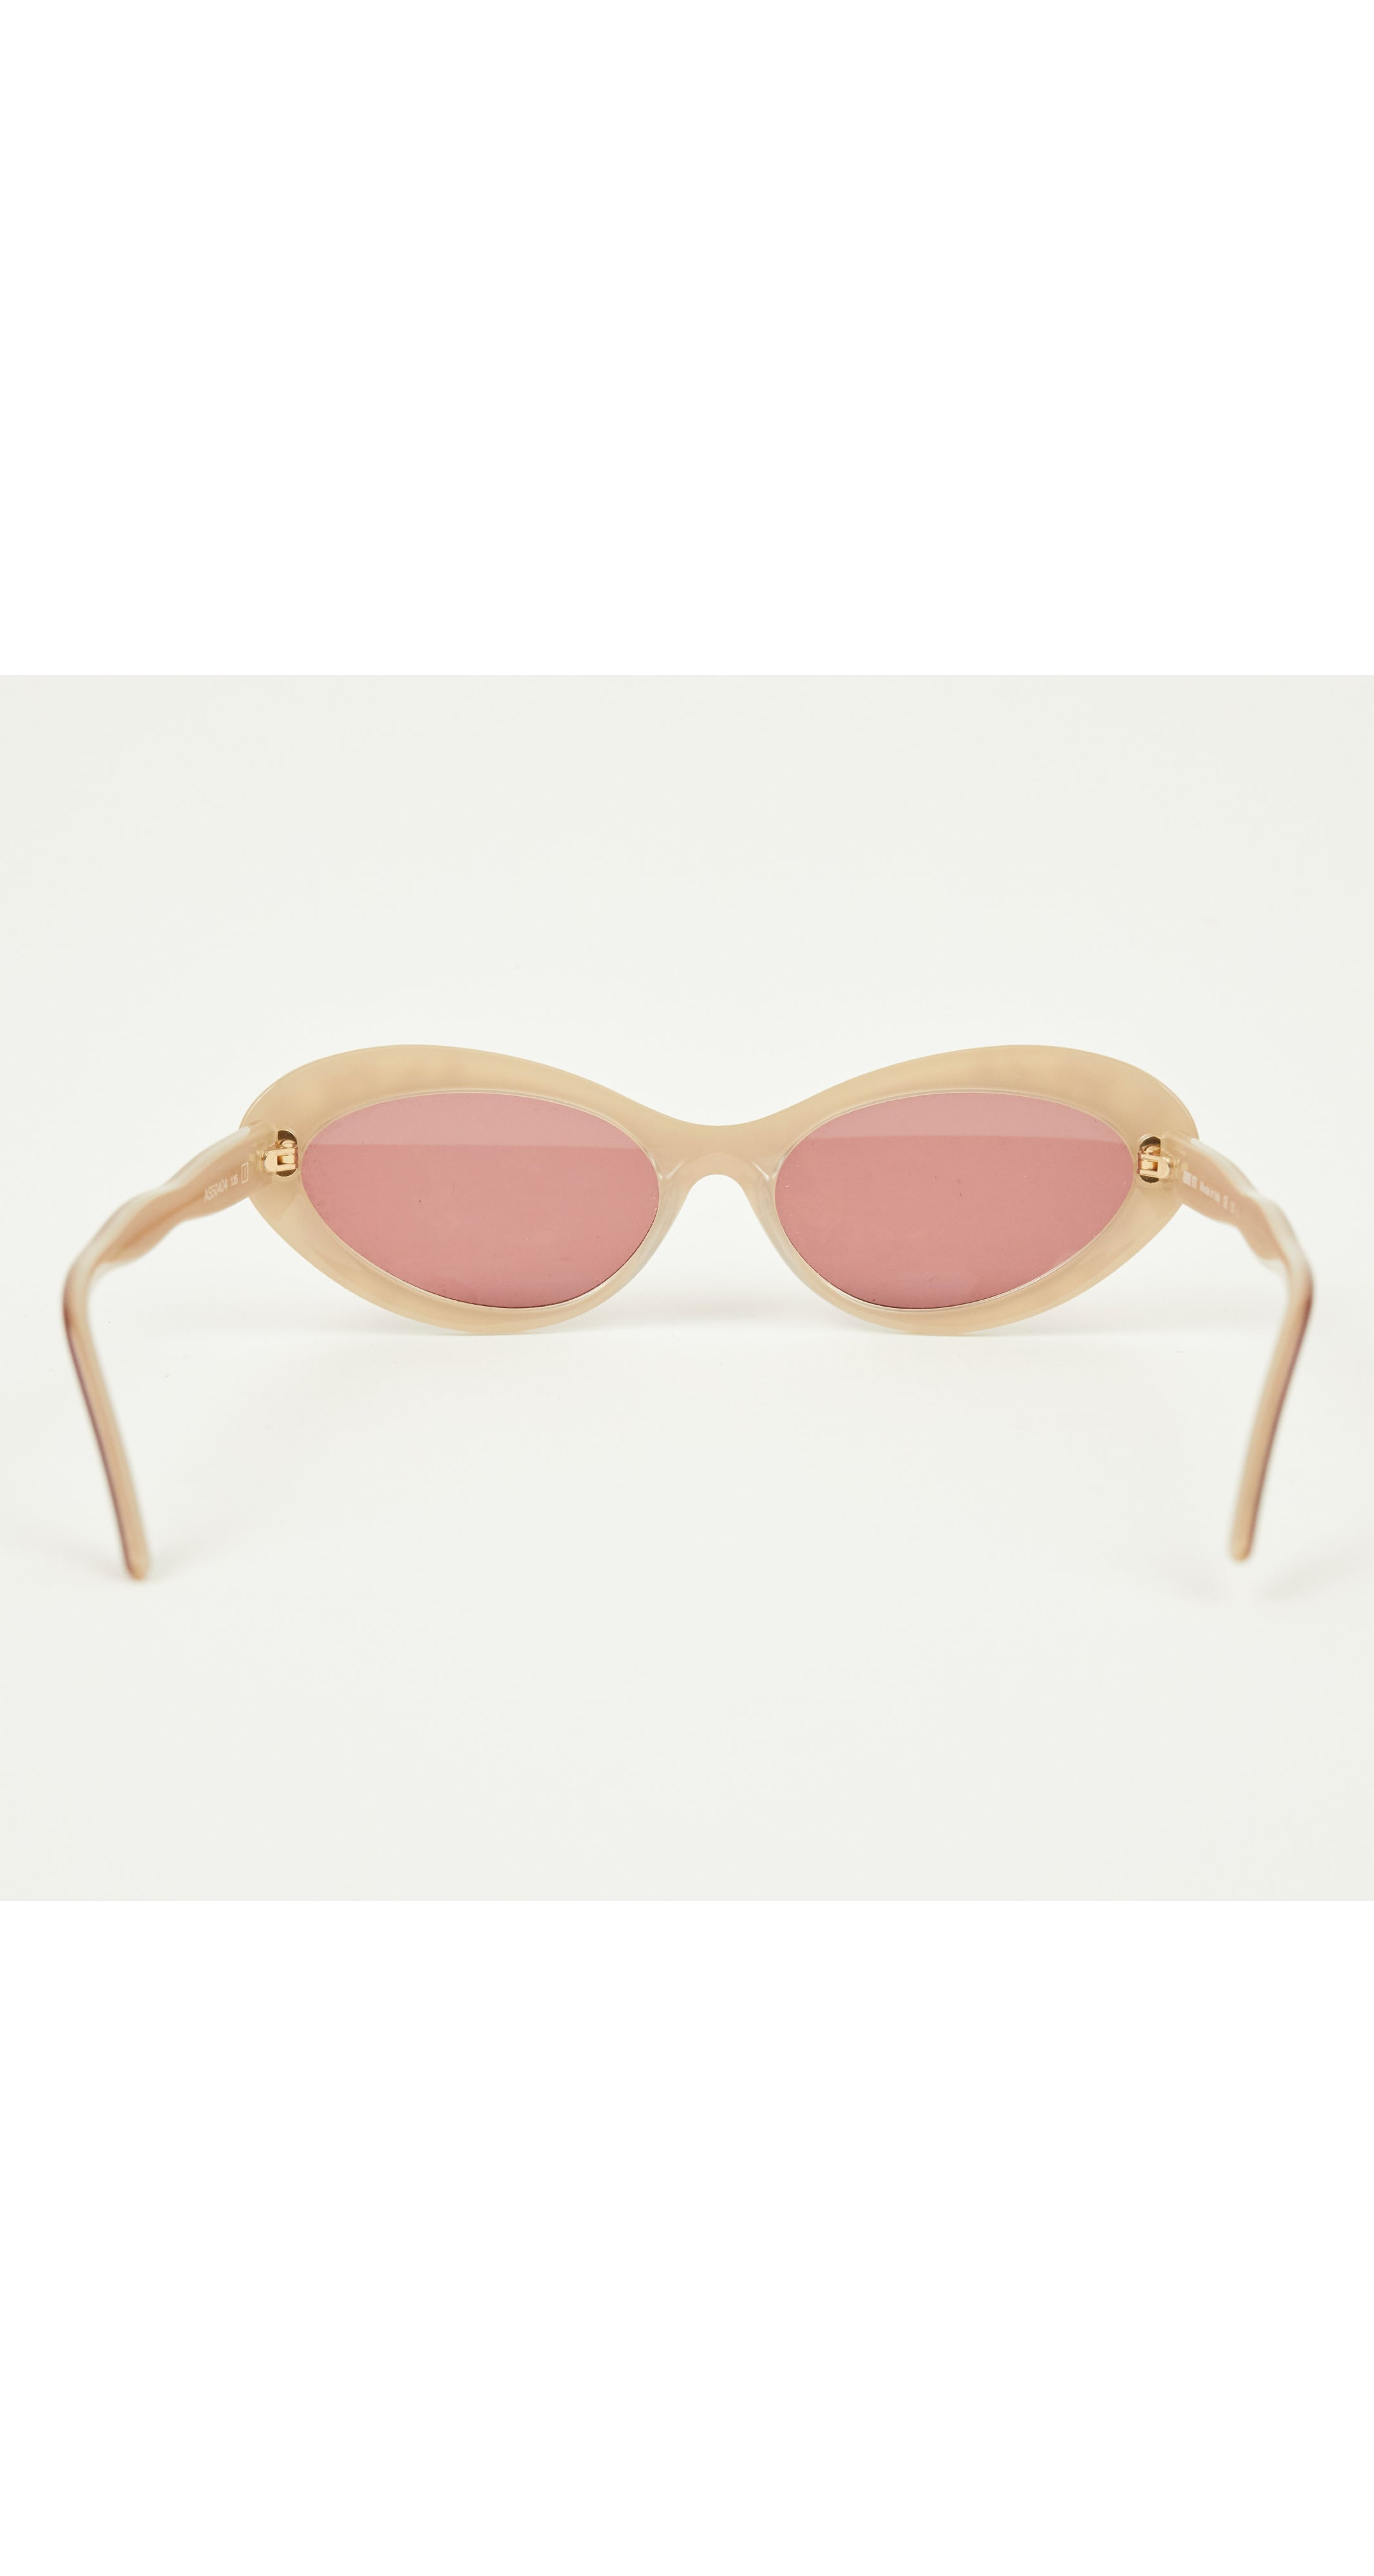 1950s Style Gold & Pink Cat Eye Sunglasses Mod. AS50404